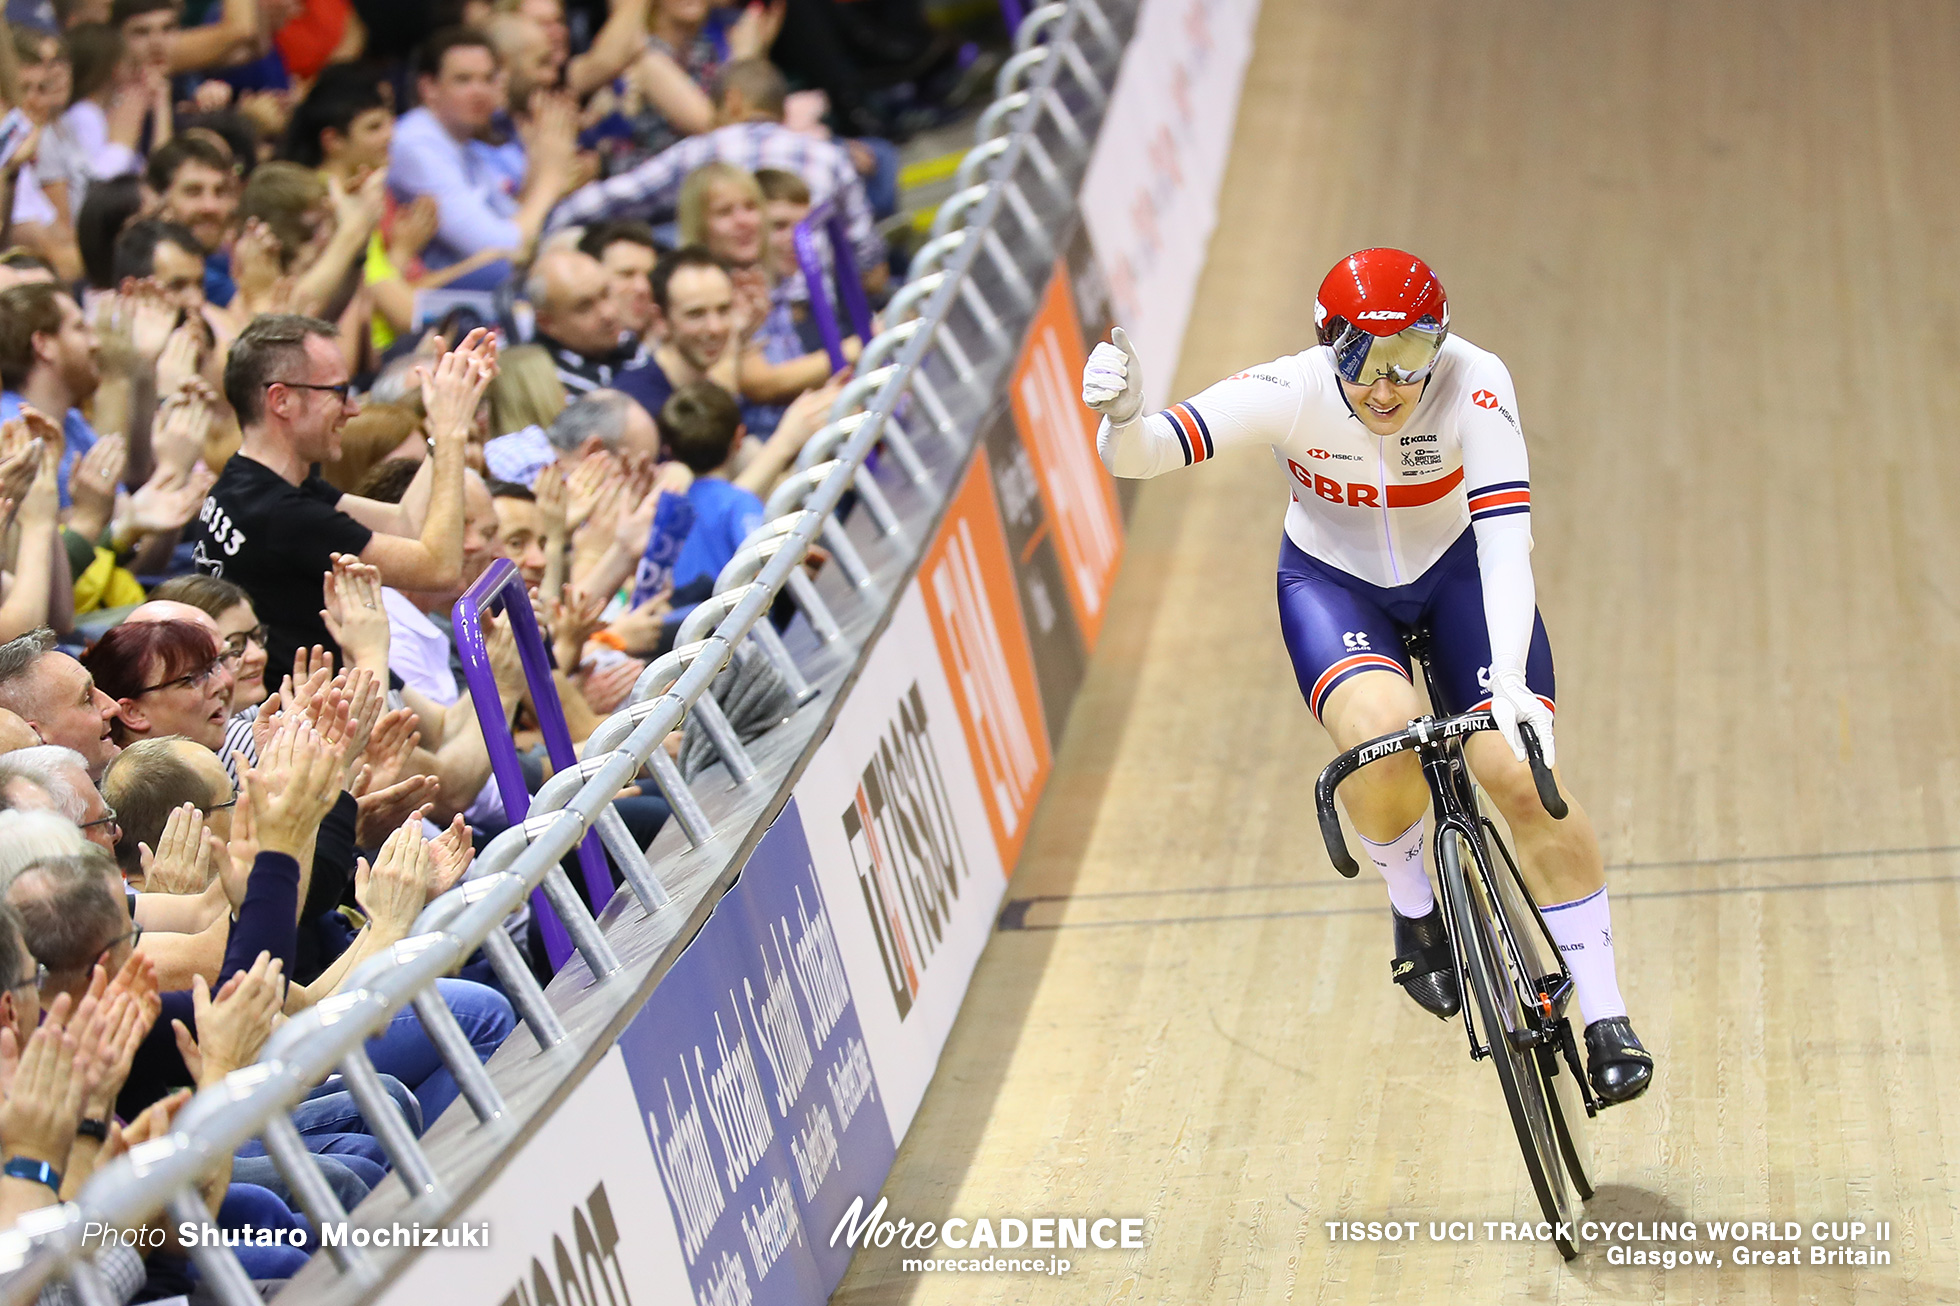 Final / Women's Keirin / TISSOT UCI TRACK CYCLING WORLD CUP II, Glasgow, Great Britain, Katy MARCHANT ケイティー・マーシャン